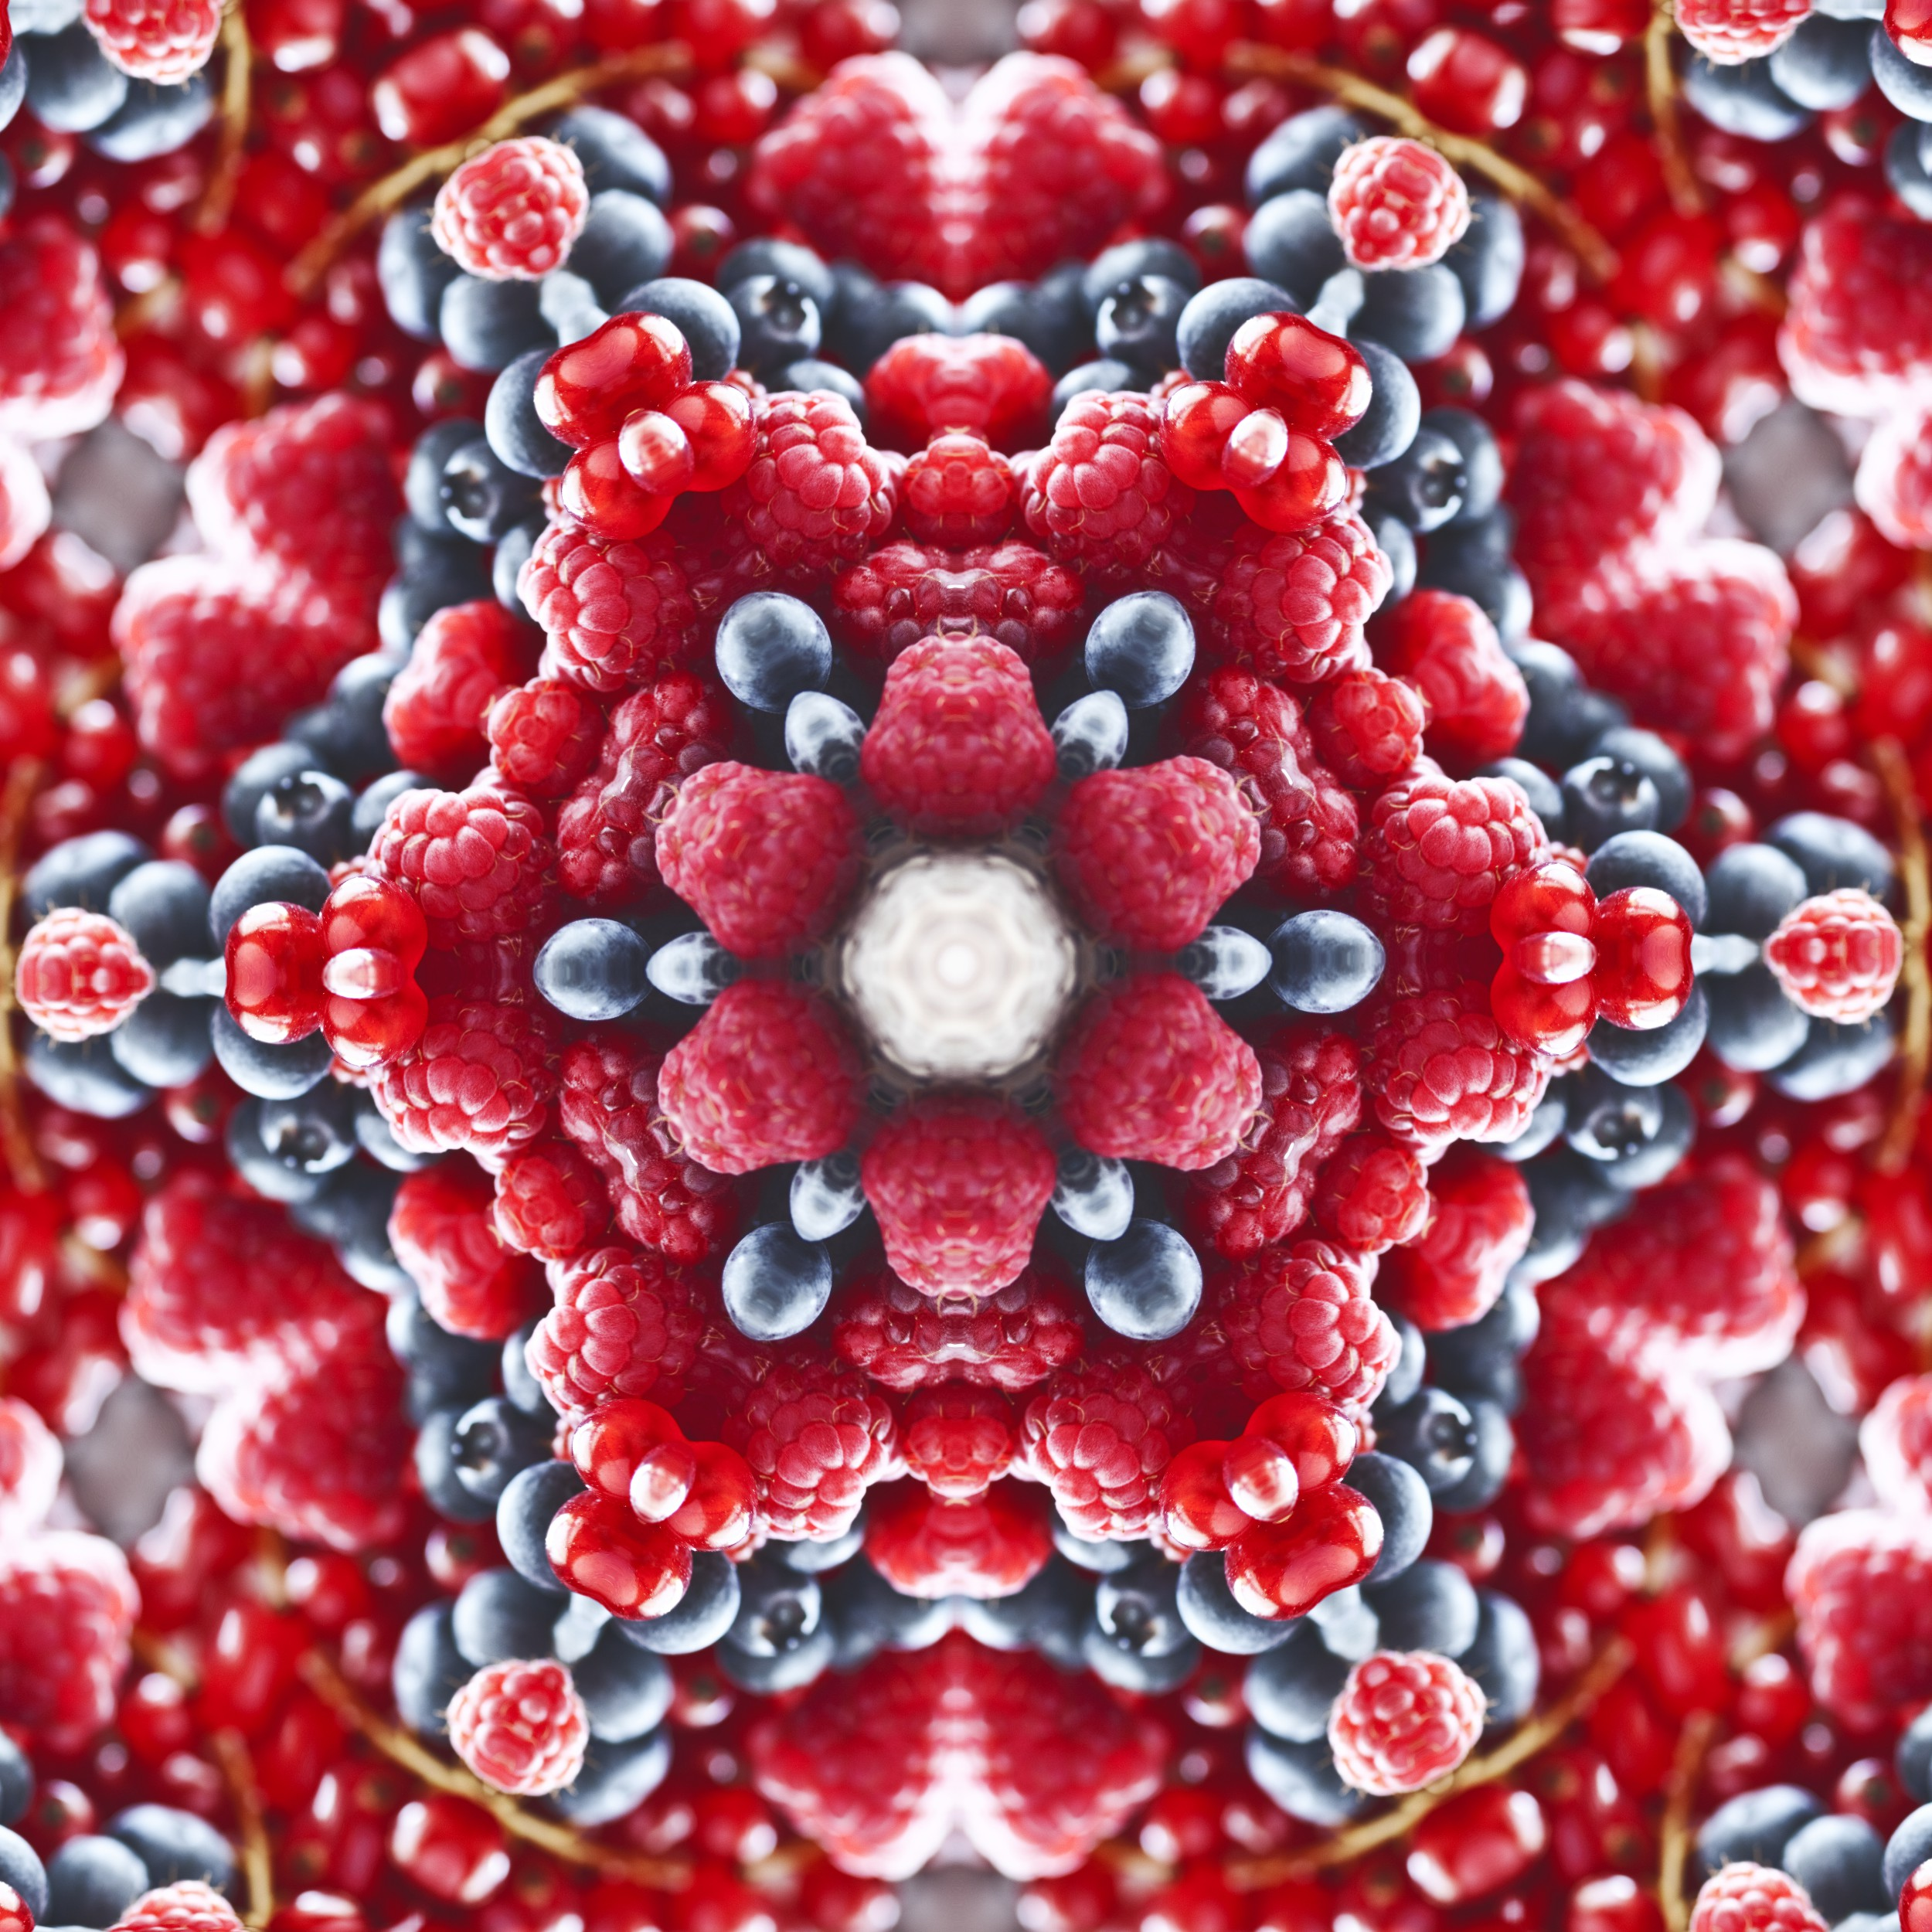 Online kaleidoscope tool was applied to a handful of juicy berries